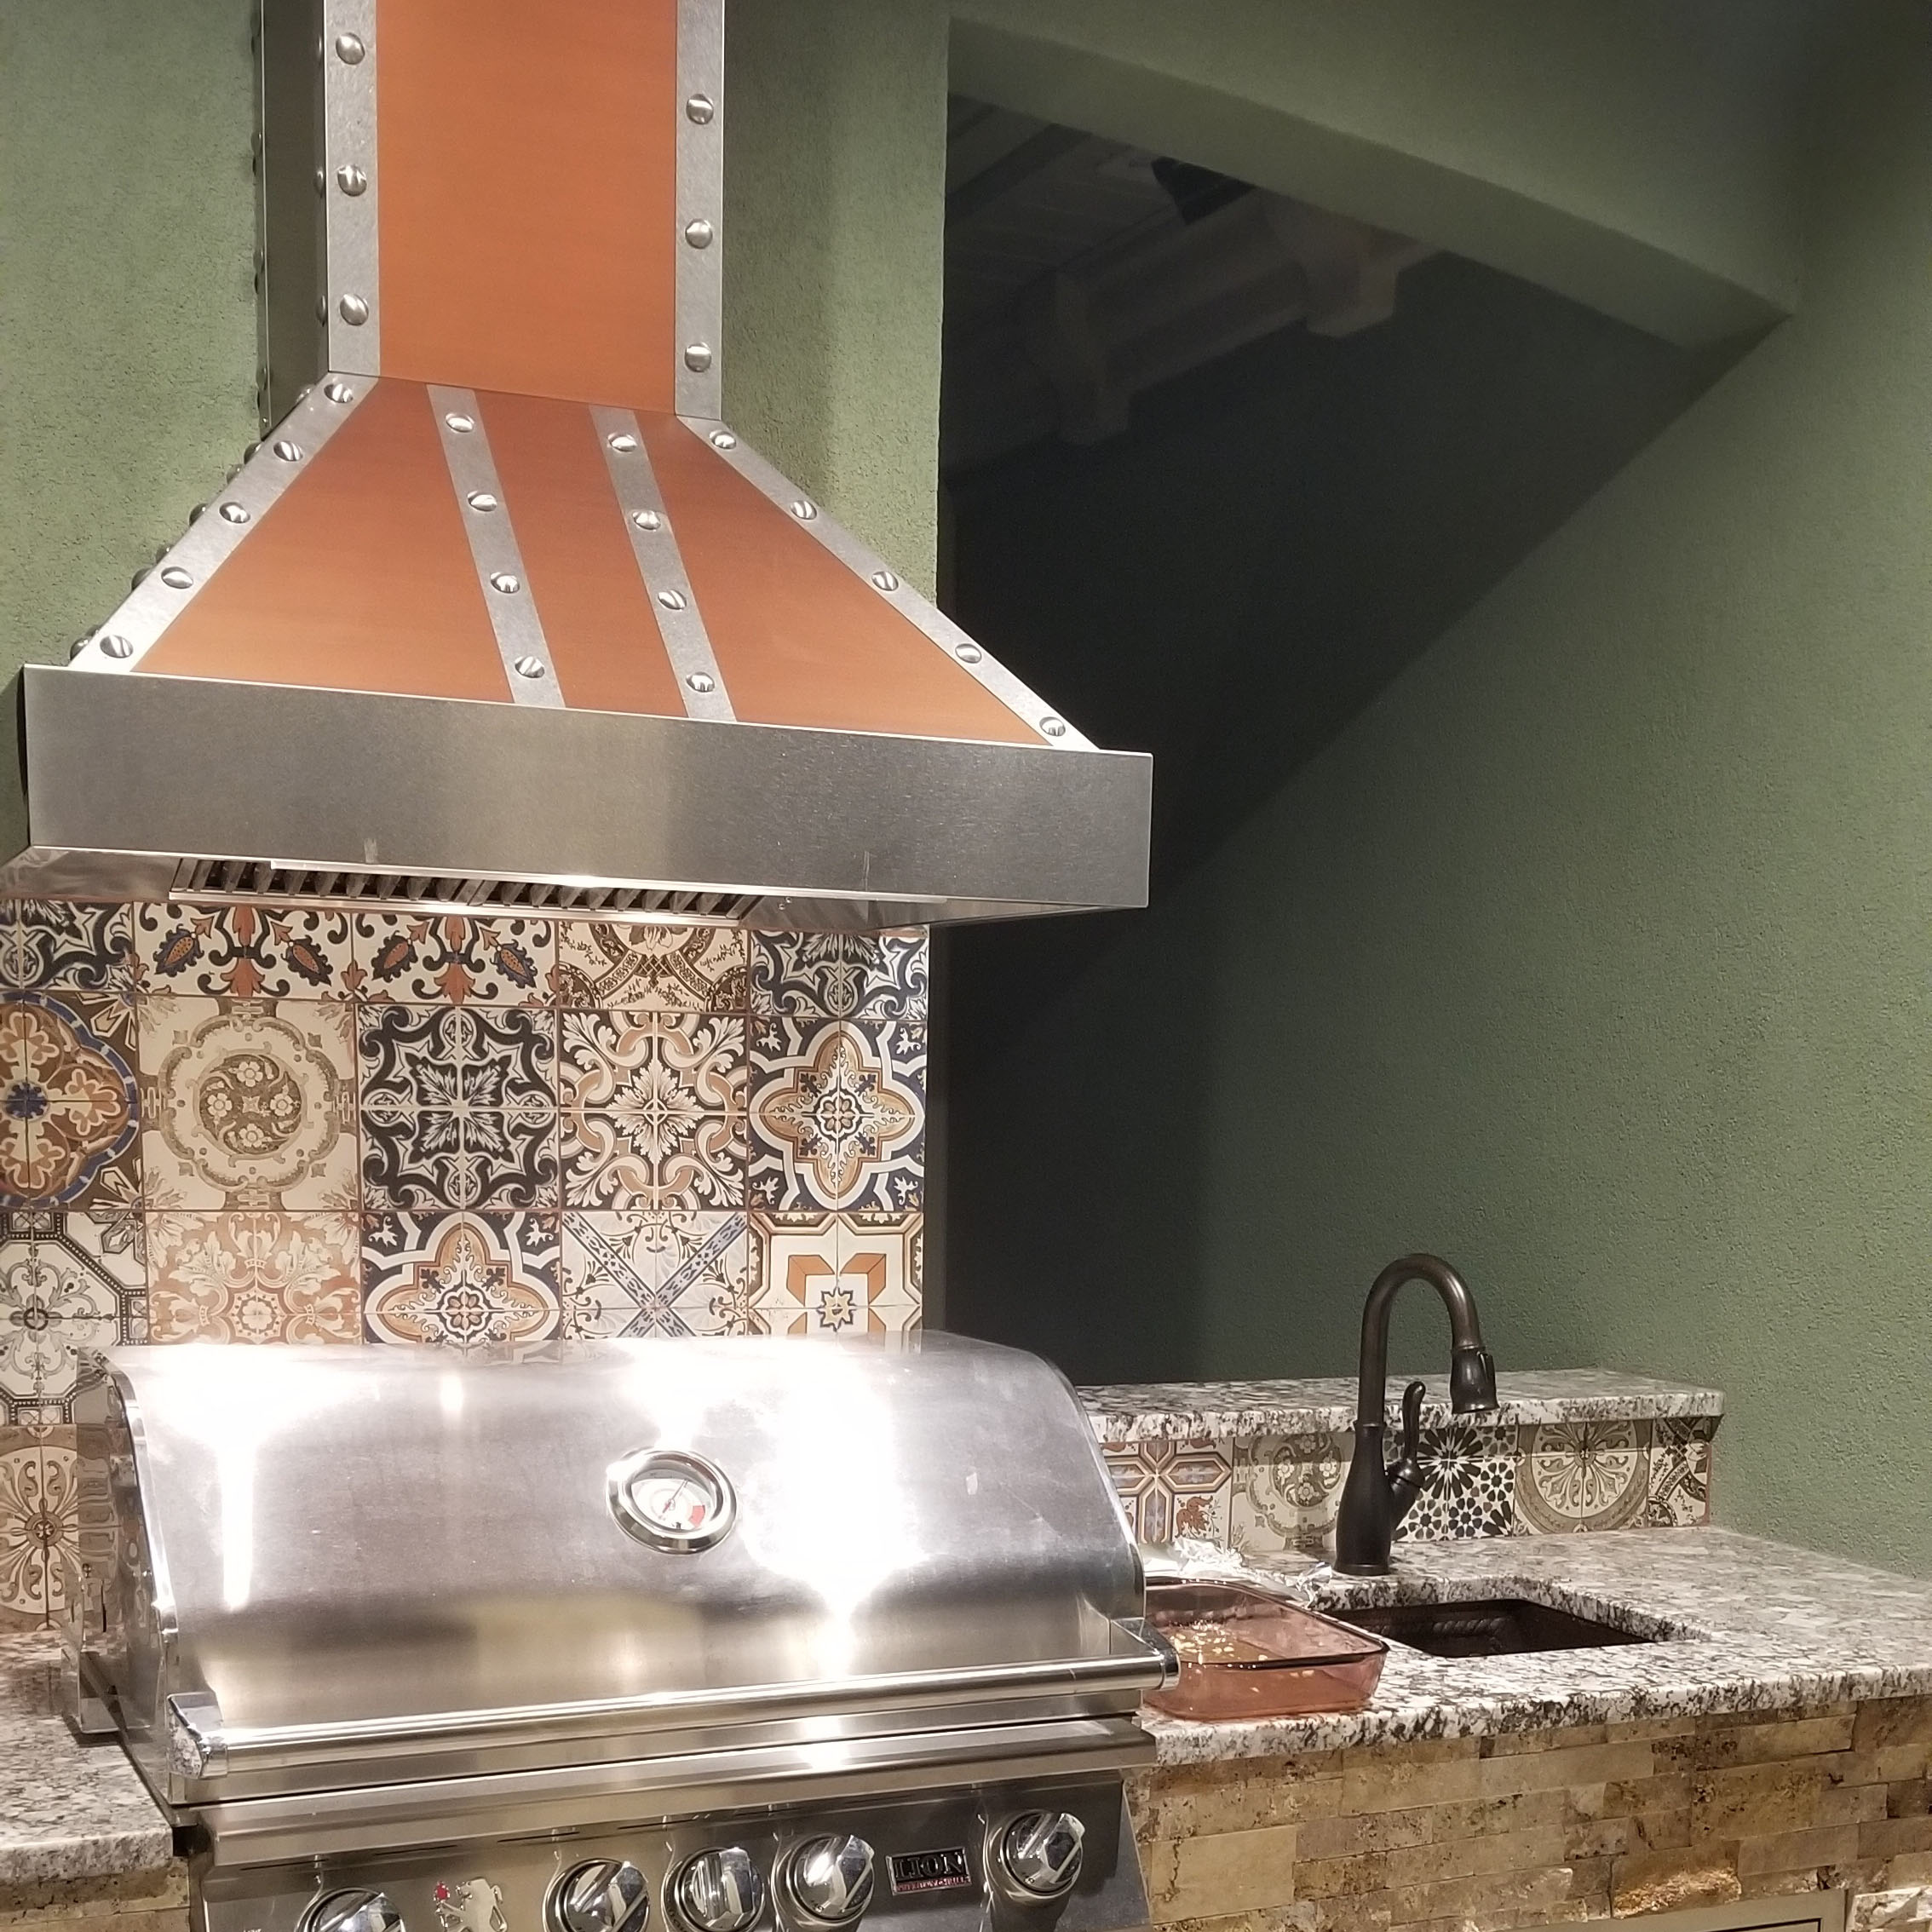 zline-copper-wall-mounted-range-hood-655-CSSSS-customer-photo-sq.jpg